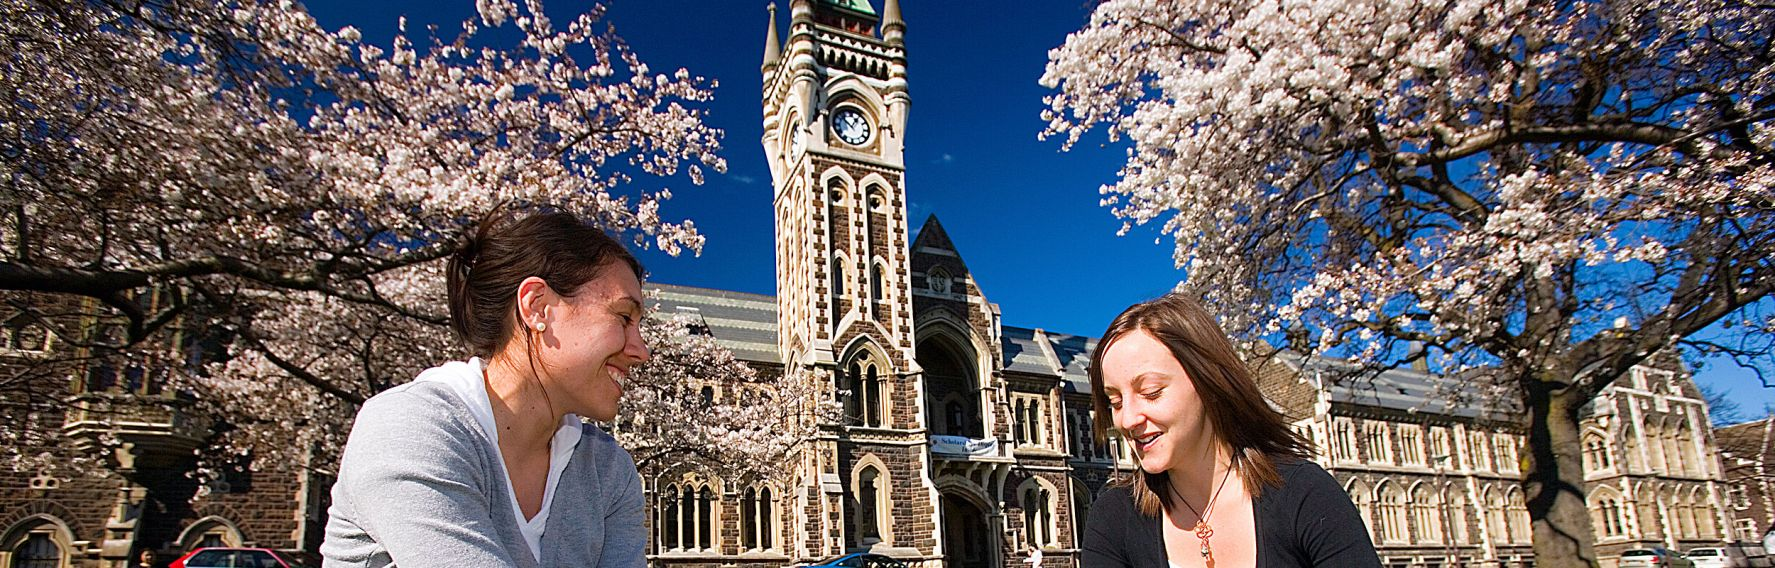 University of Otago Clocktower & Students on the Clocktower lawn